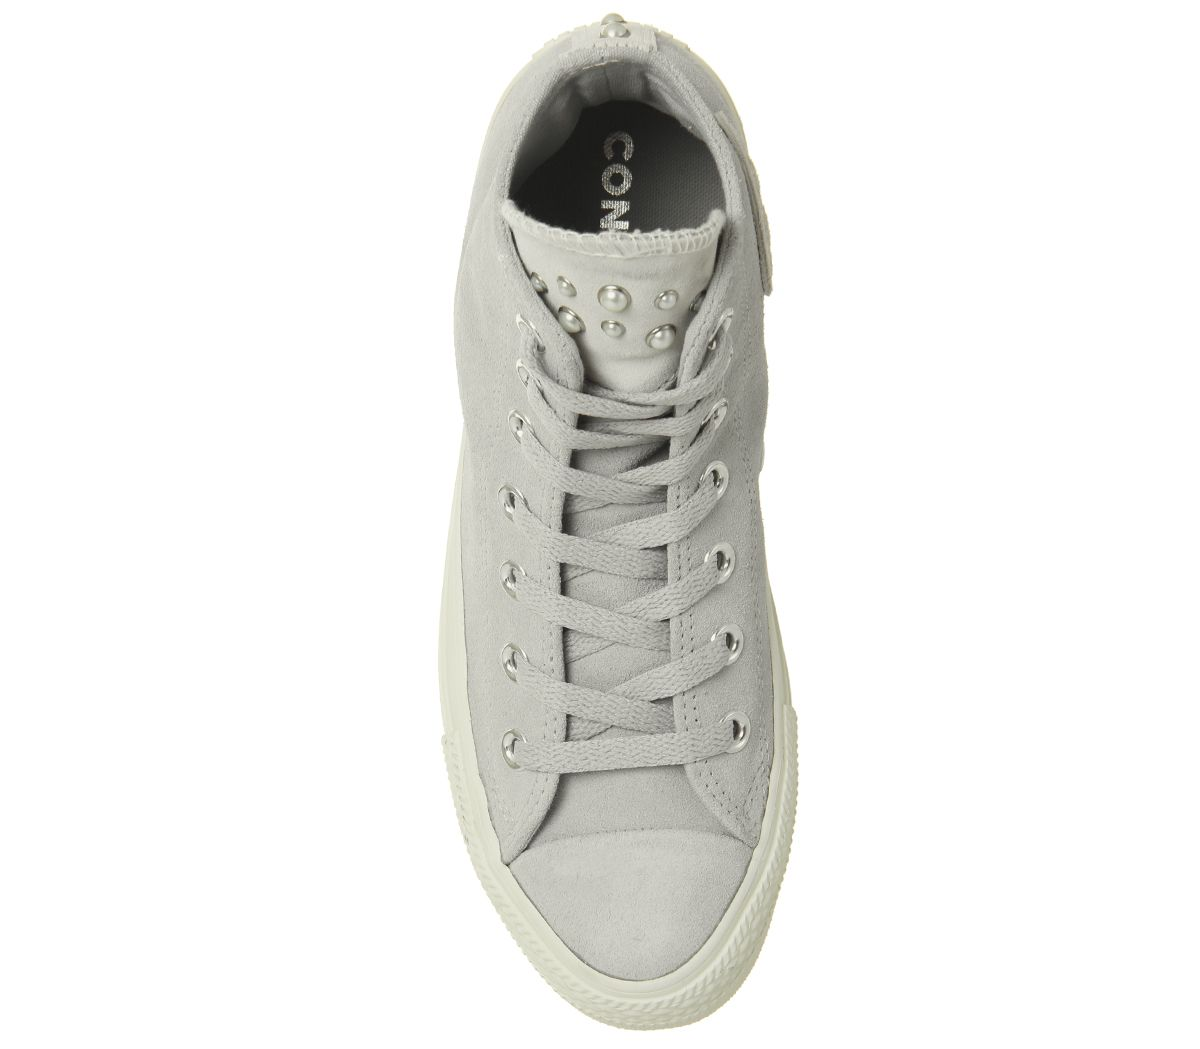 0caa6ac312 Womens Converse All Star Hi Leather Ash Grey Egret Blush Pearl ...